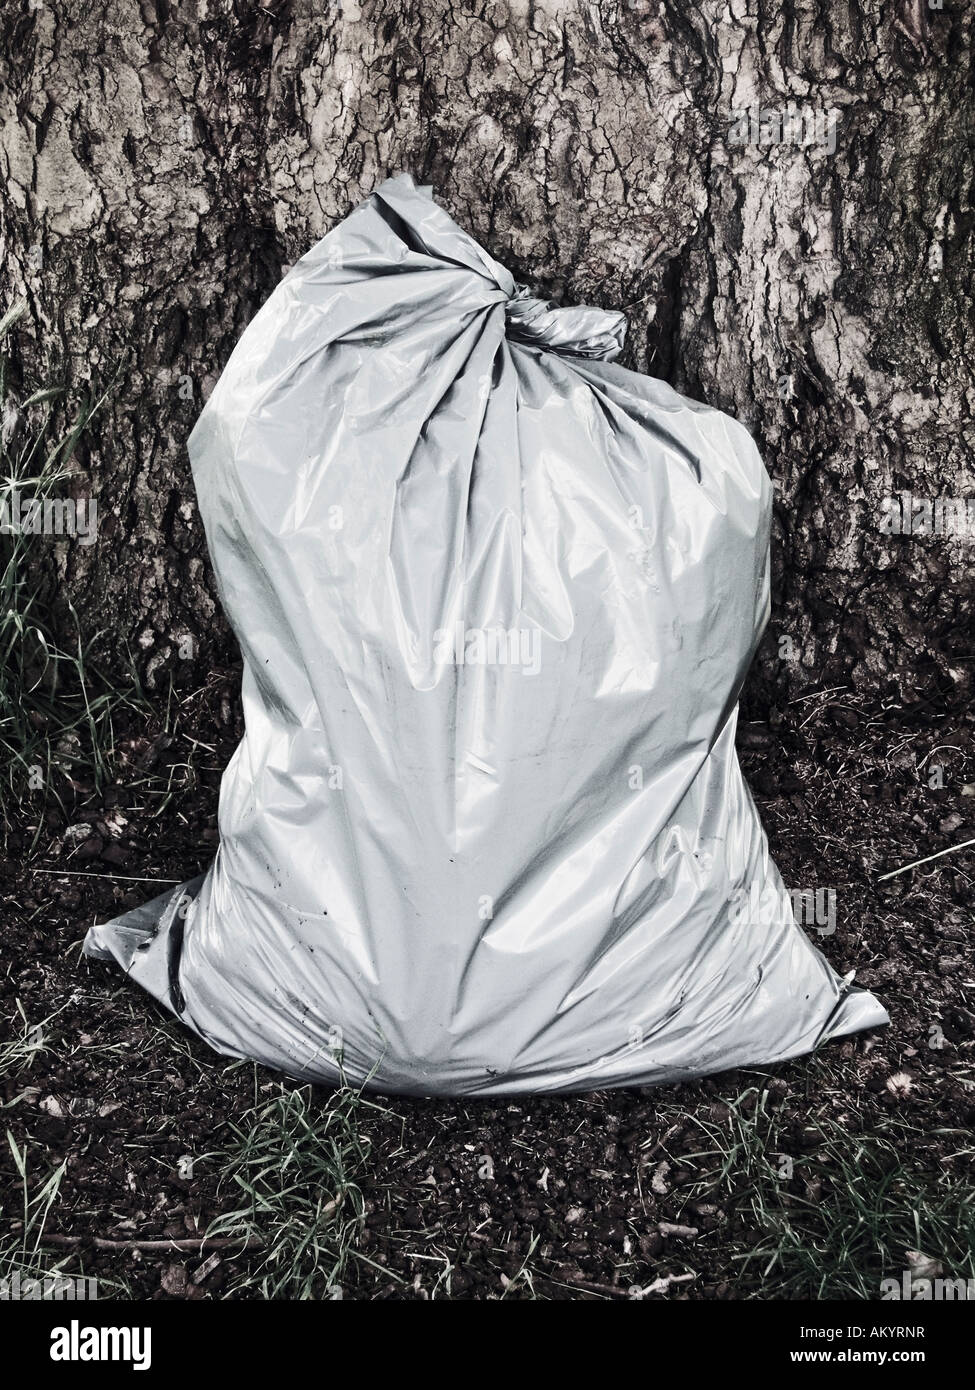 One Full Grey Plastic Bag Standing In Front Of Tree - Stock Image